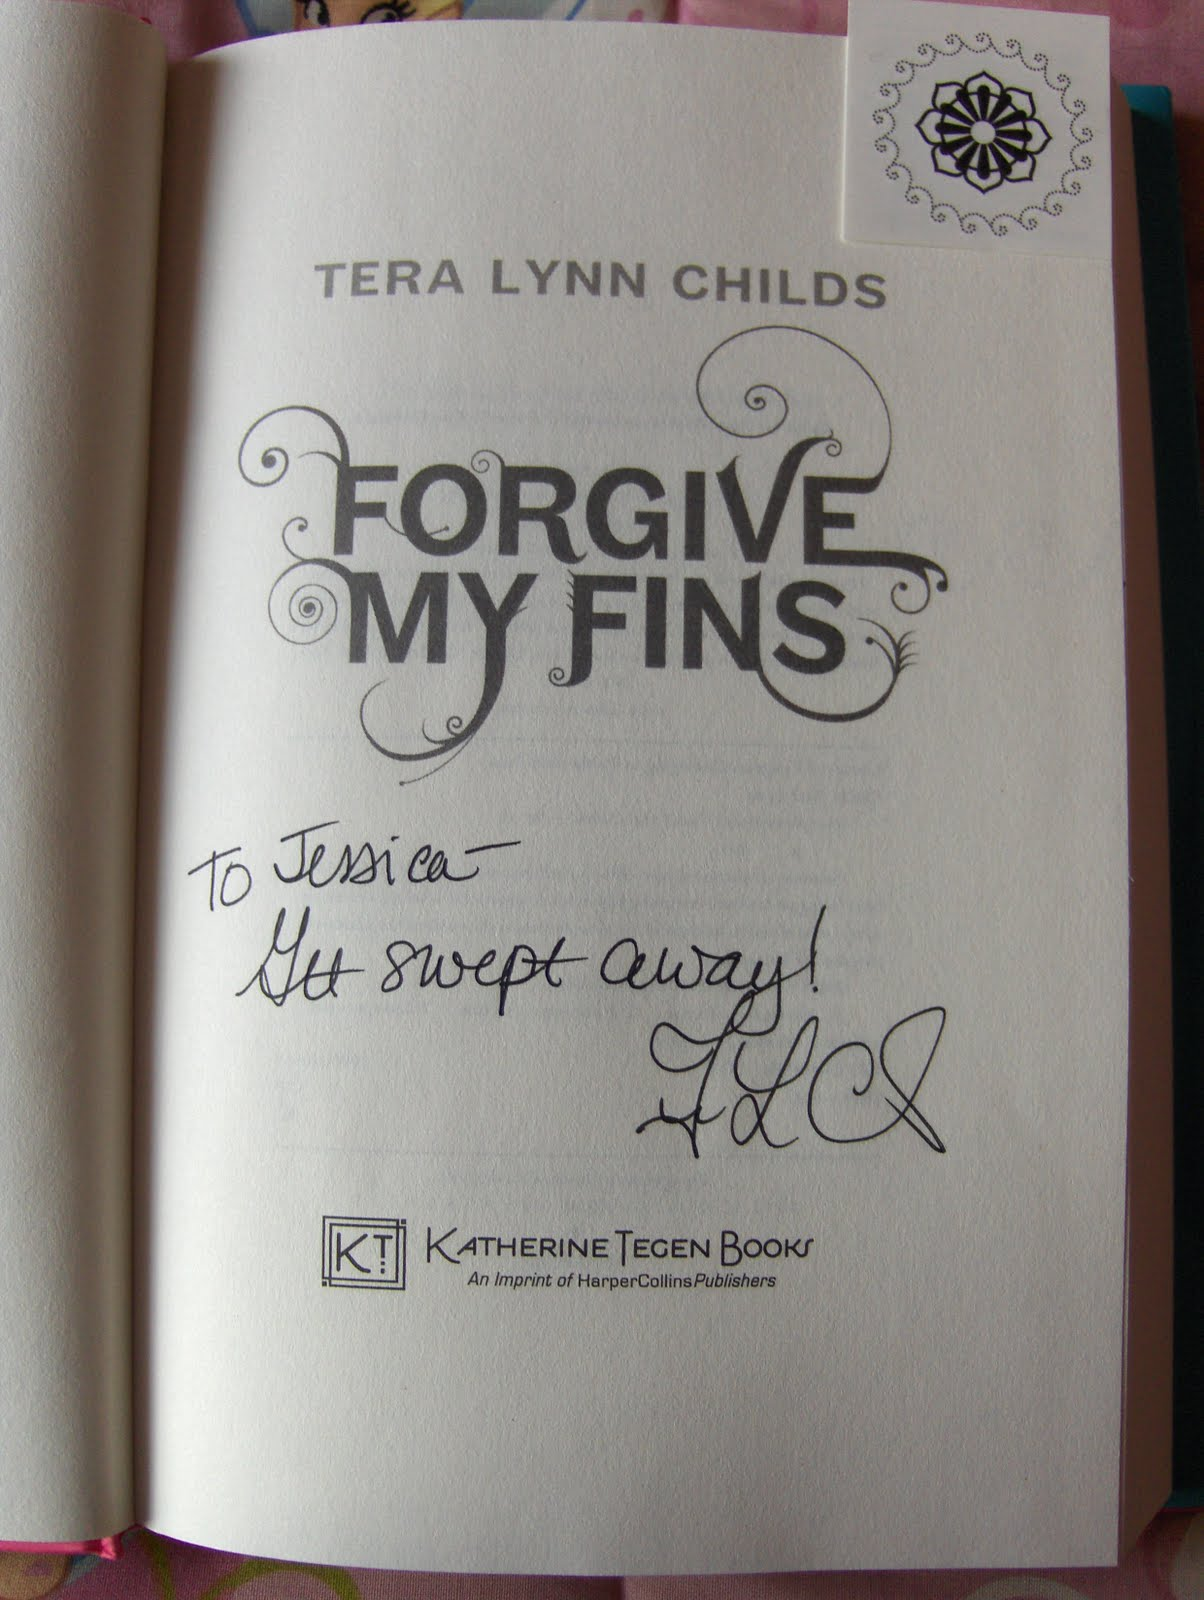 I Won A Signed Personalized Copy Of Forgive My Fins By And From Tera Lynn  Childs On Her Website She Ran A Contest And I Won!! Yay!